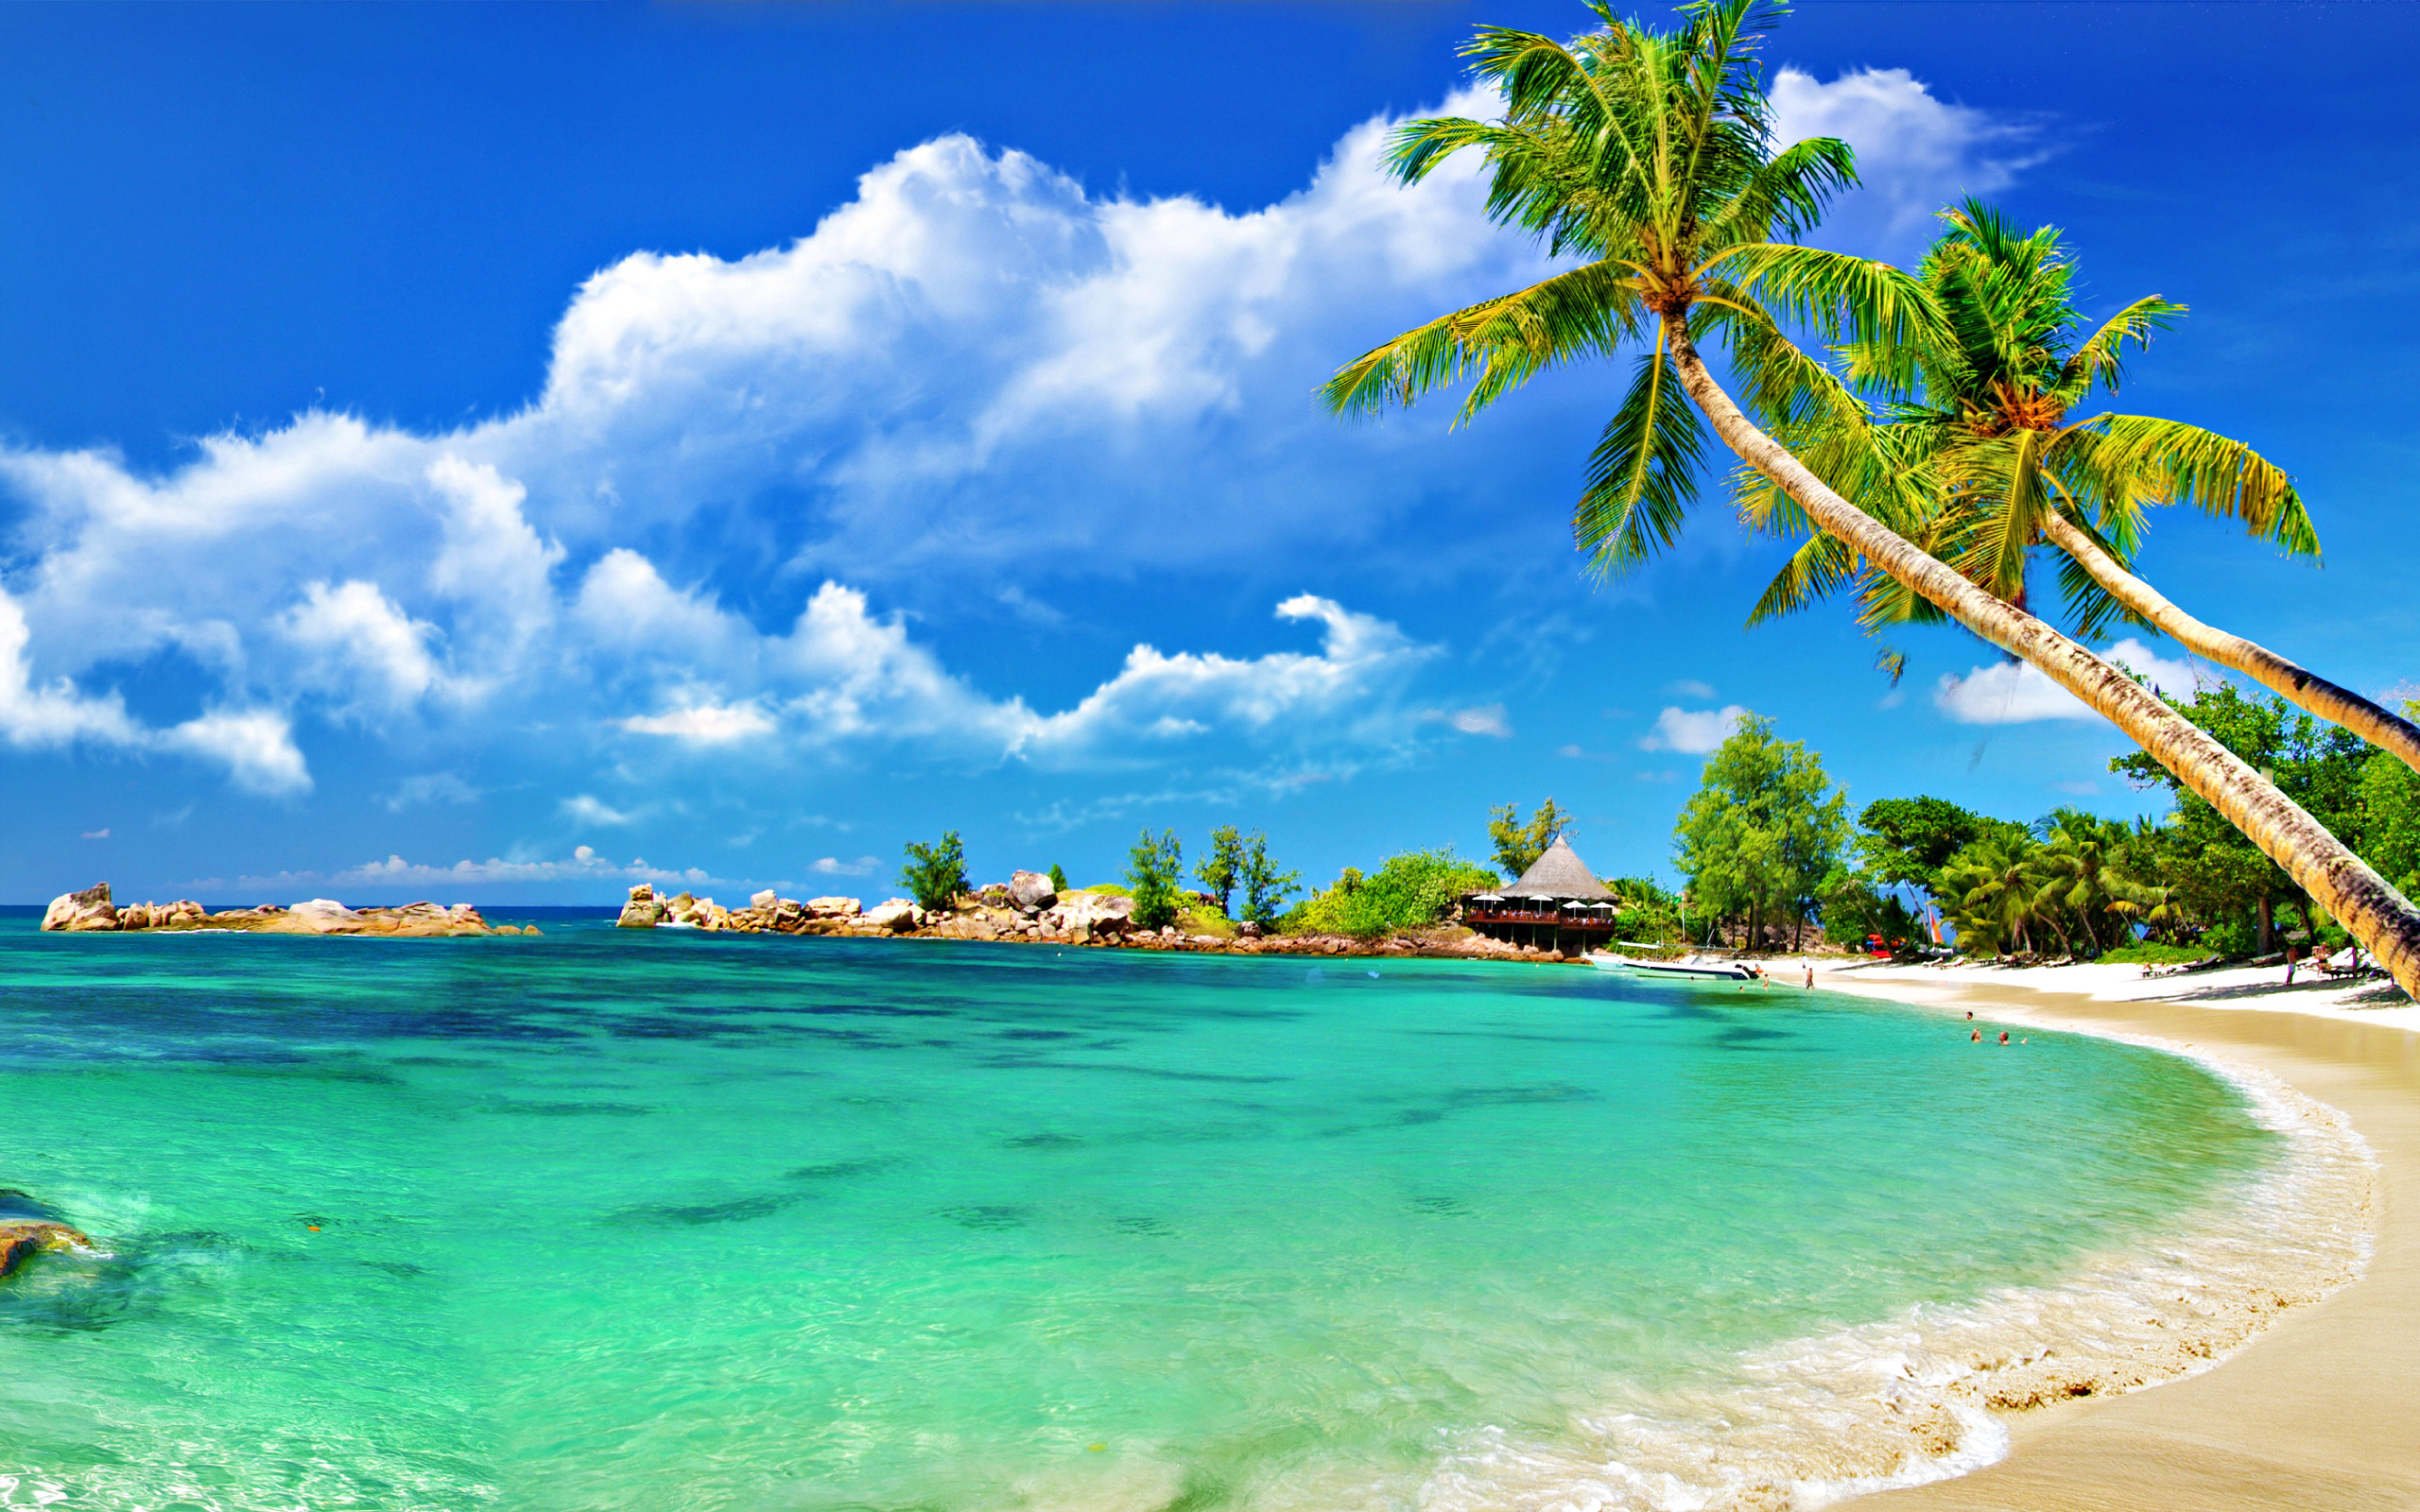 2560x1600 Explore and share Tropical Beach Wallpaper on WallpaperSafari